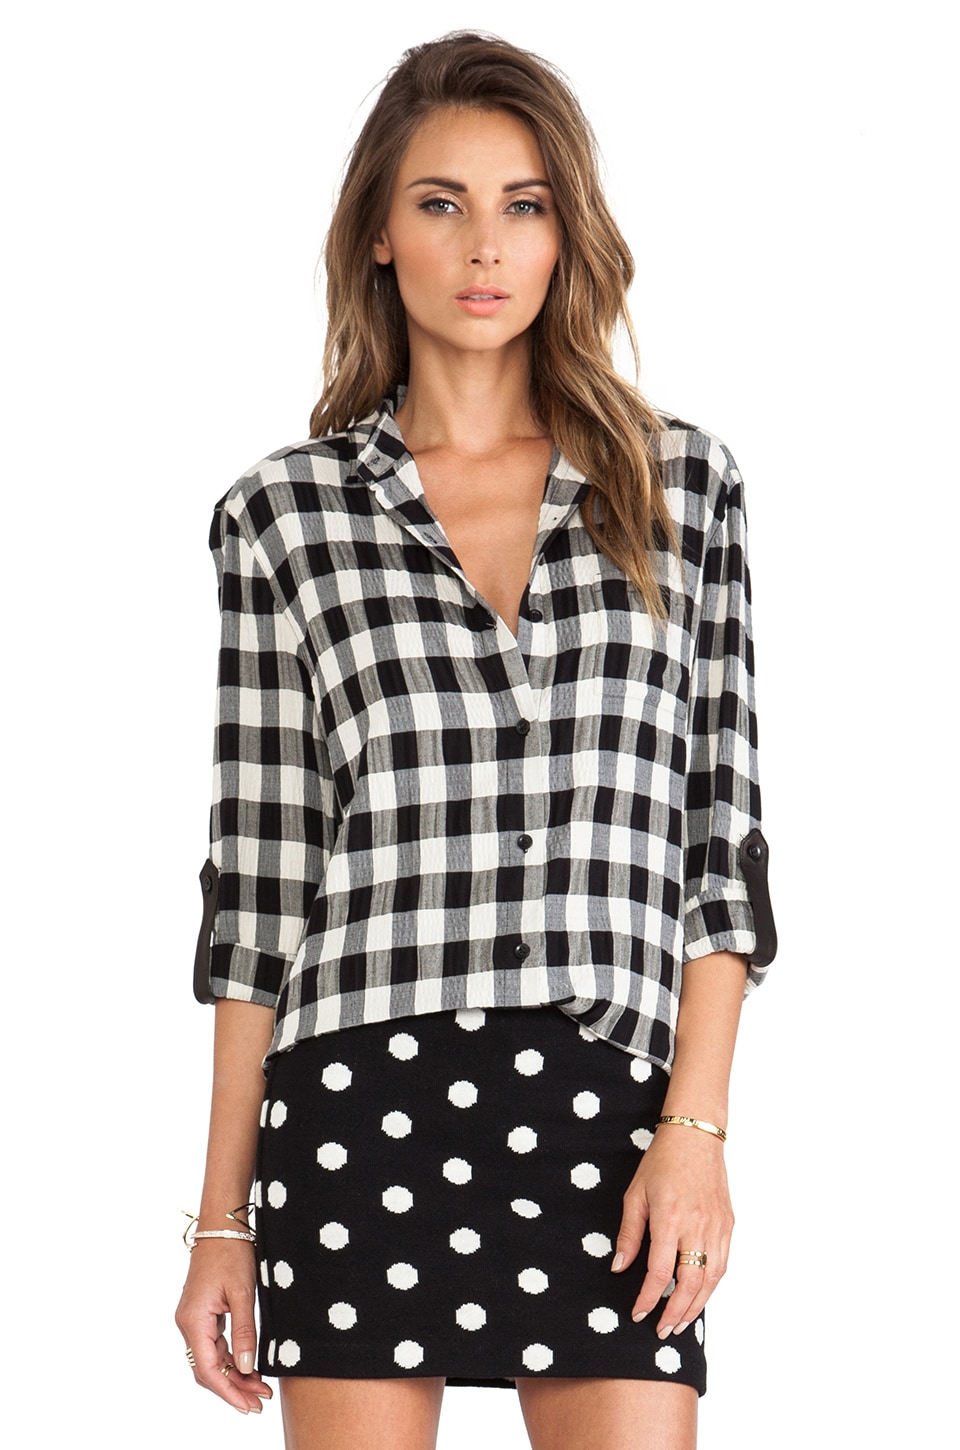 Alice + Olivia Piper Button Down in Black & White